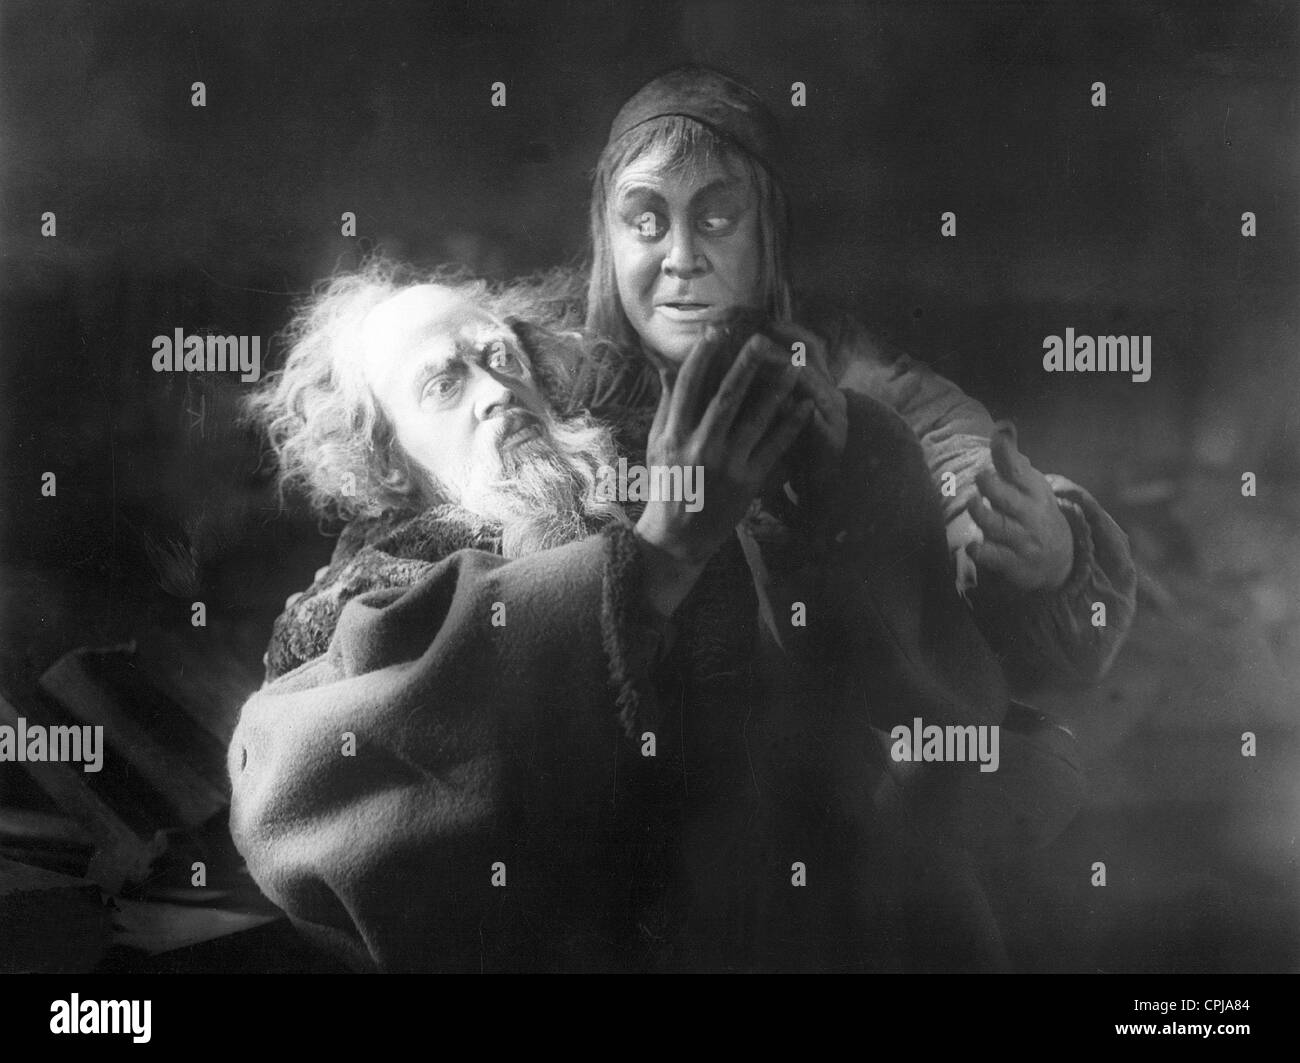 Gosta Ekman and Emil Jannings in 'Faust', 1926 - Stock Image